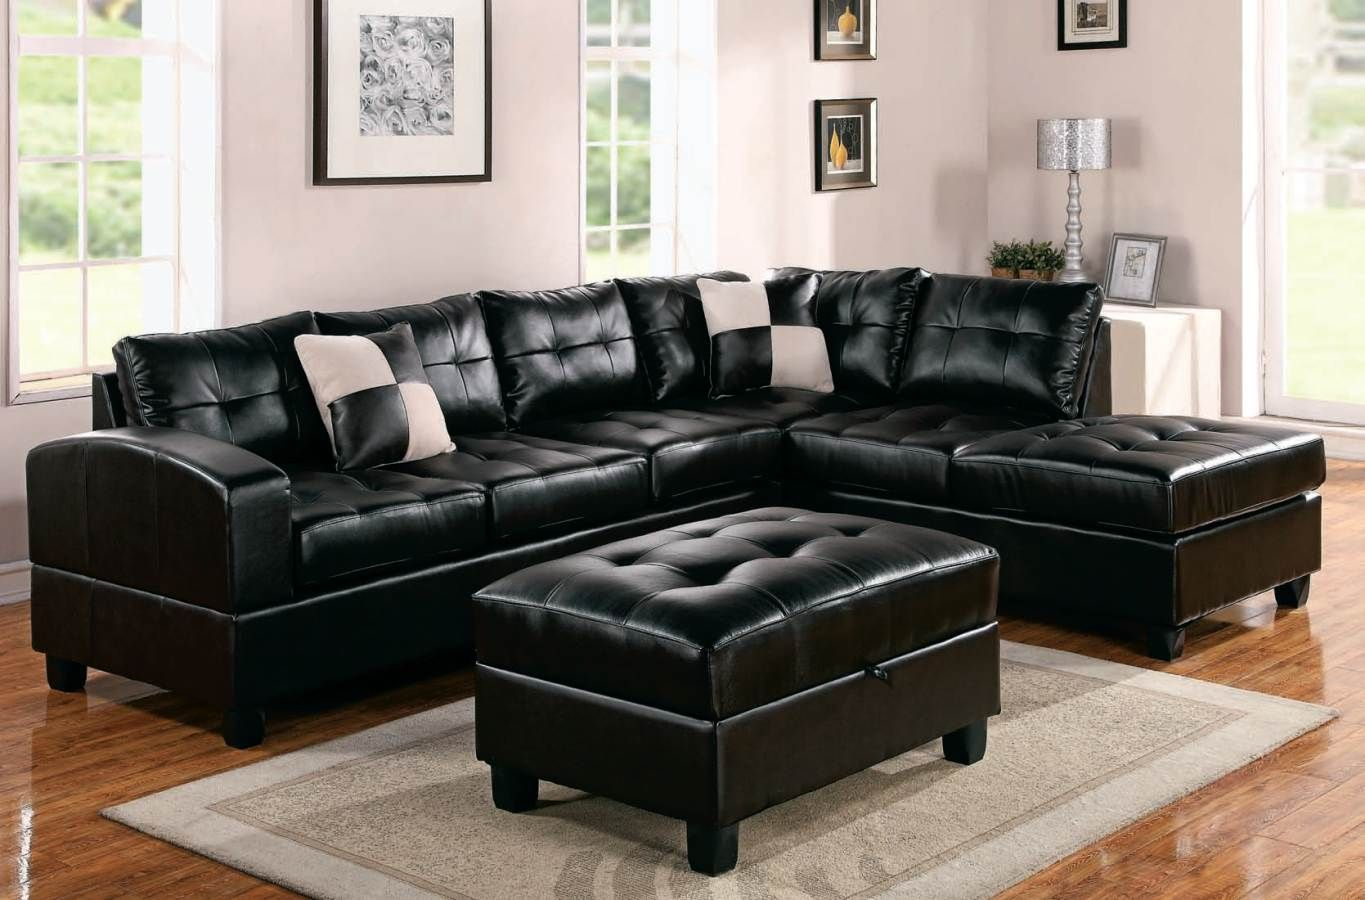 Sectional Sofa Kiva Espresso Bonded Leather Right Chaise Sofa +  Ottoman Right Facing 3 Seat Sofa: X X Facing Chaise: X X Assembly Is  Required.